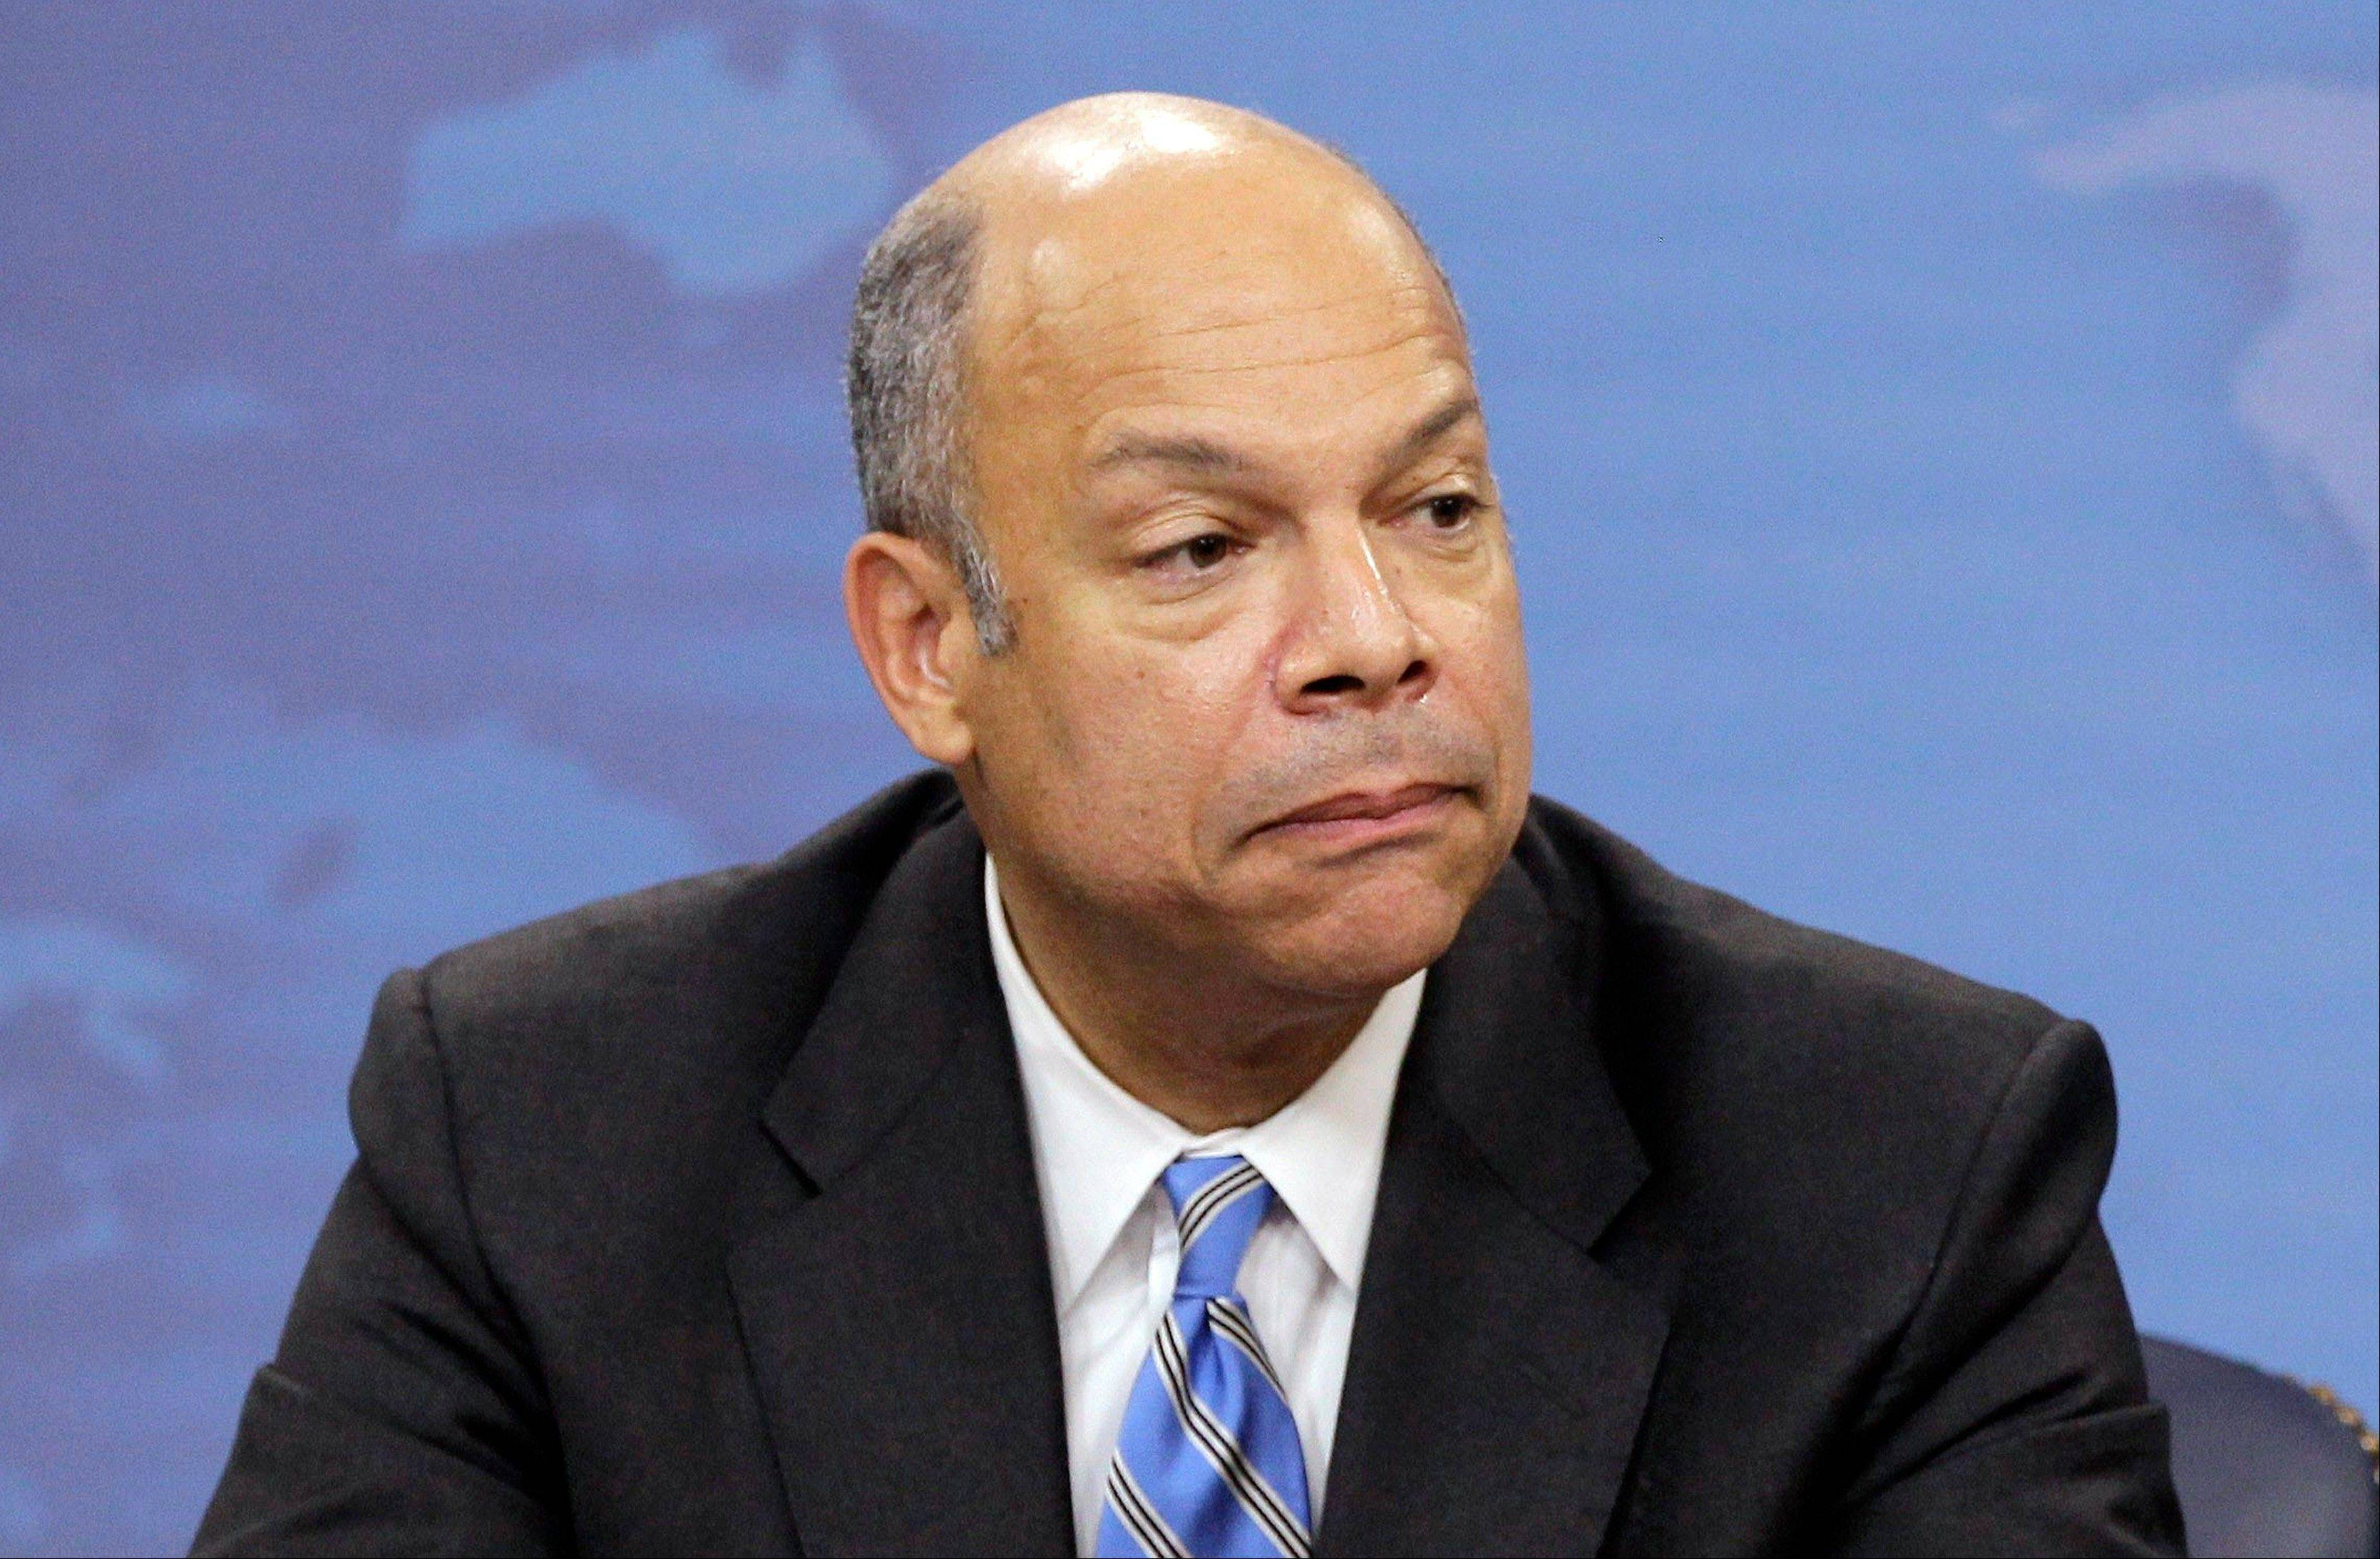 President Barack Obama has chosen former Pentagon lawyer Jeh Johnson as the new secretary of the Homeland Security Department. Obama plans to announce Johnson's nomination Friday, Oct. 18, 2013.